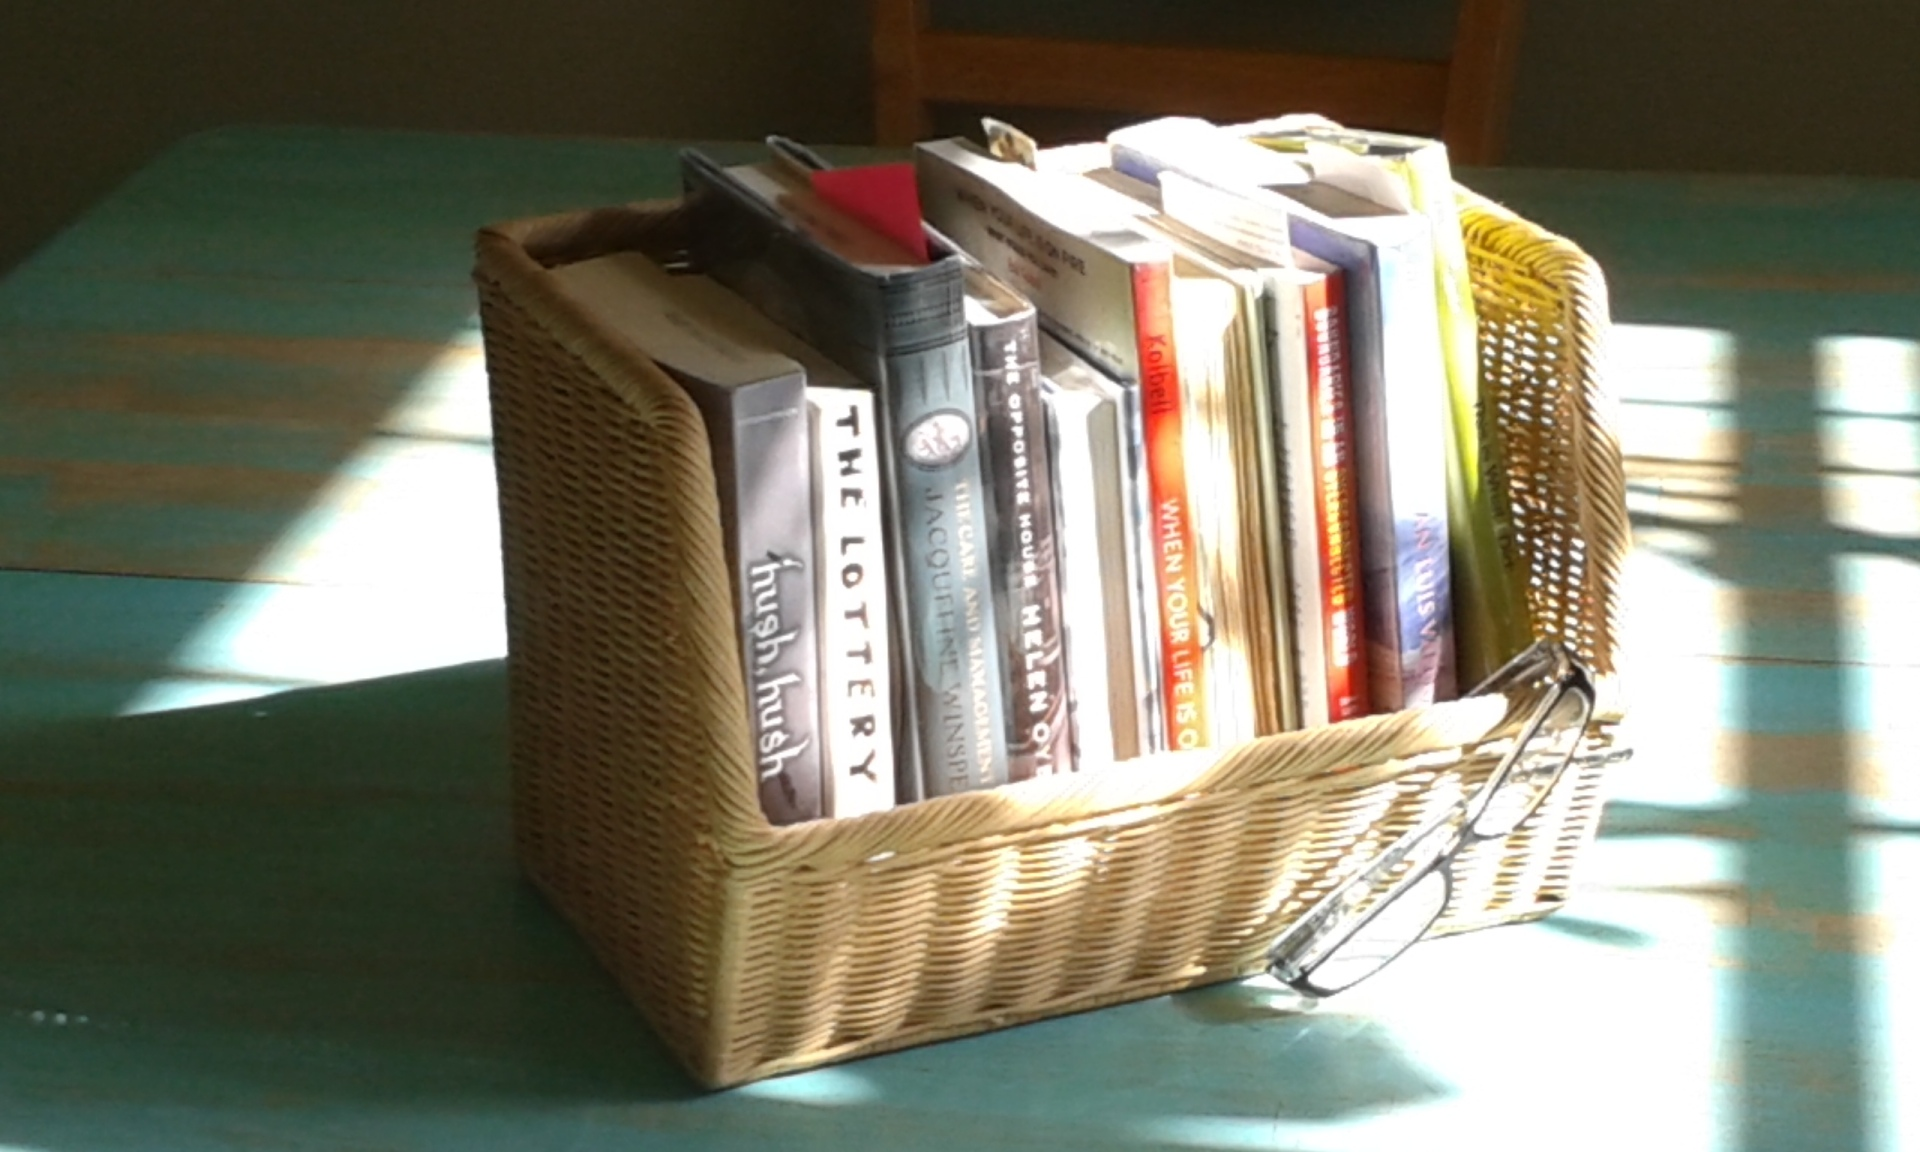 library books in a basket